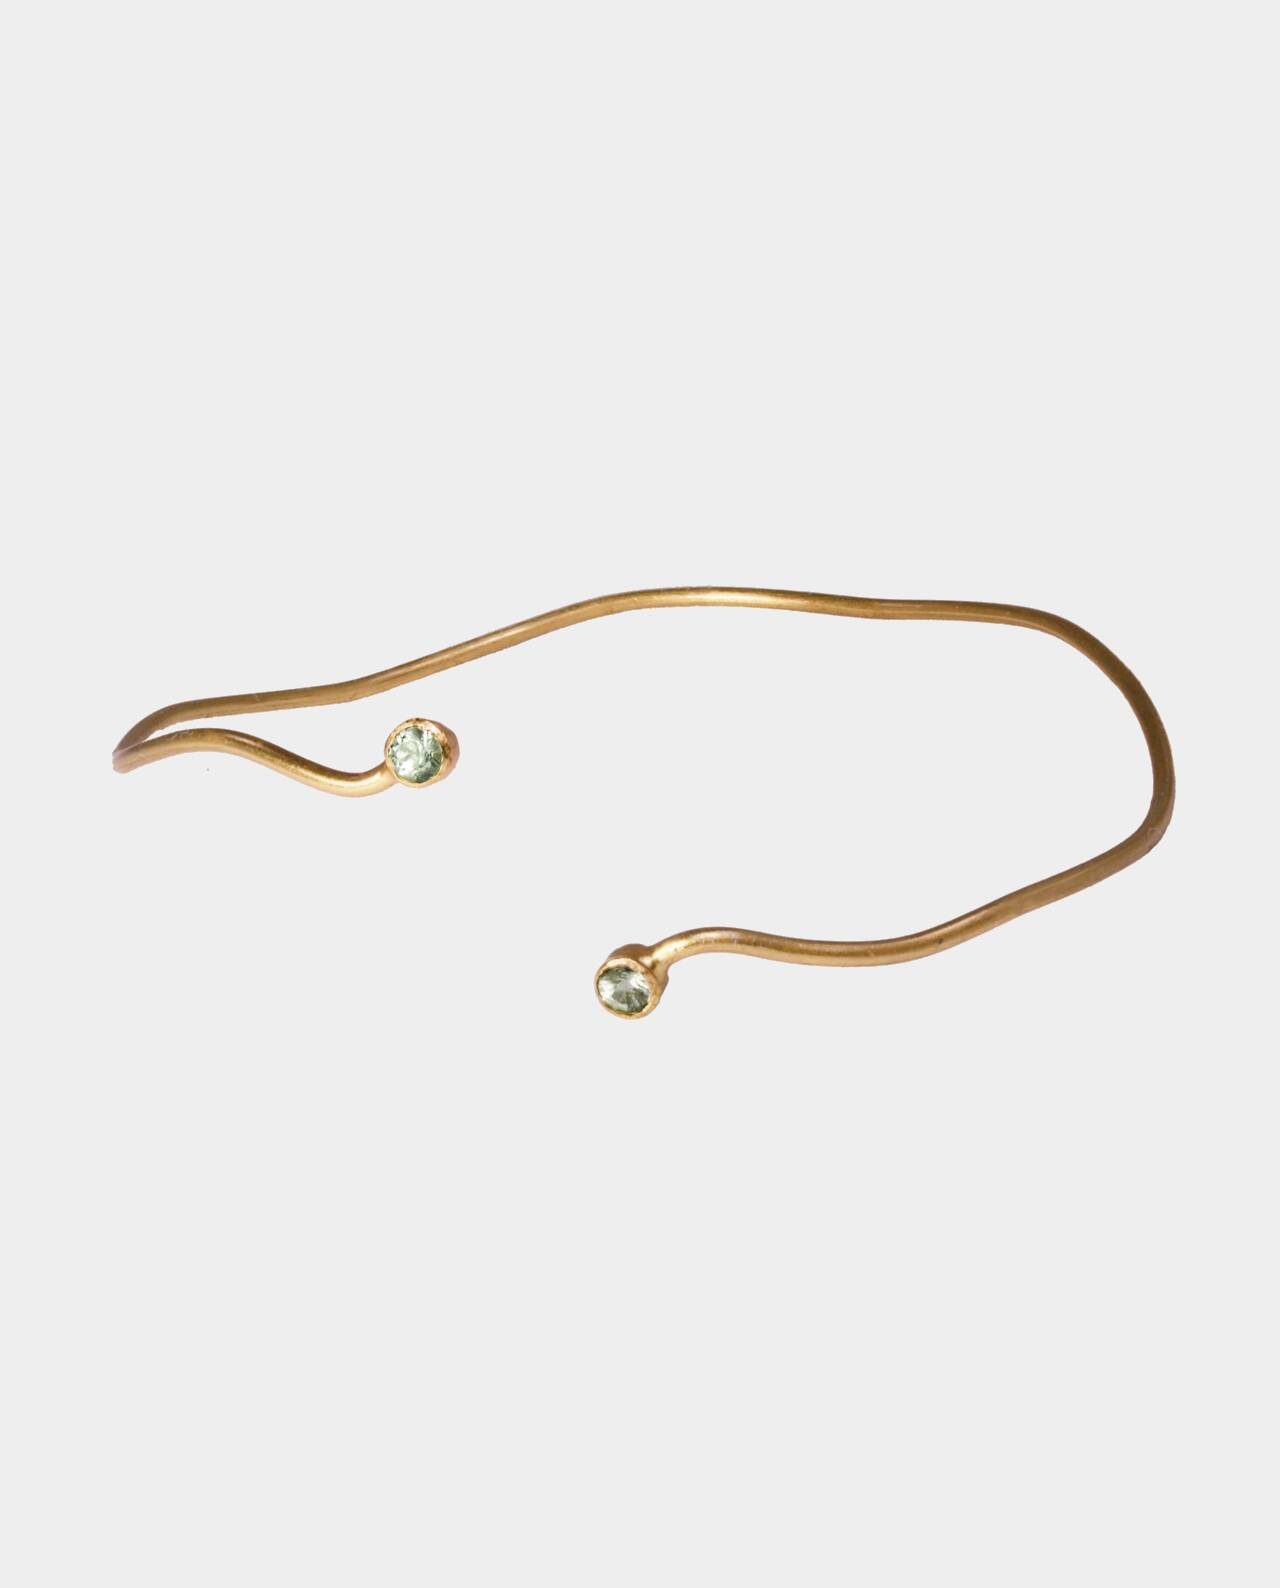 Bracelets with sparkling light green sapphires on the sterling silver plated with 18 carat gold that twists around wrist like a snake